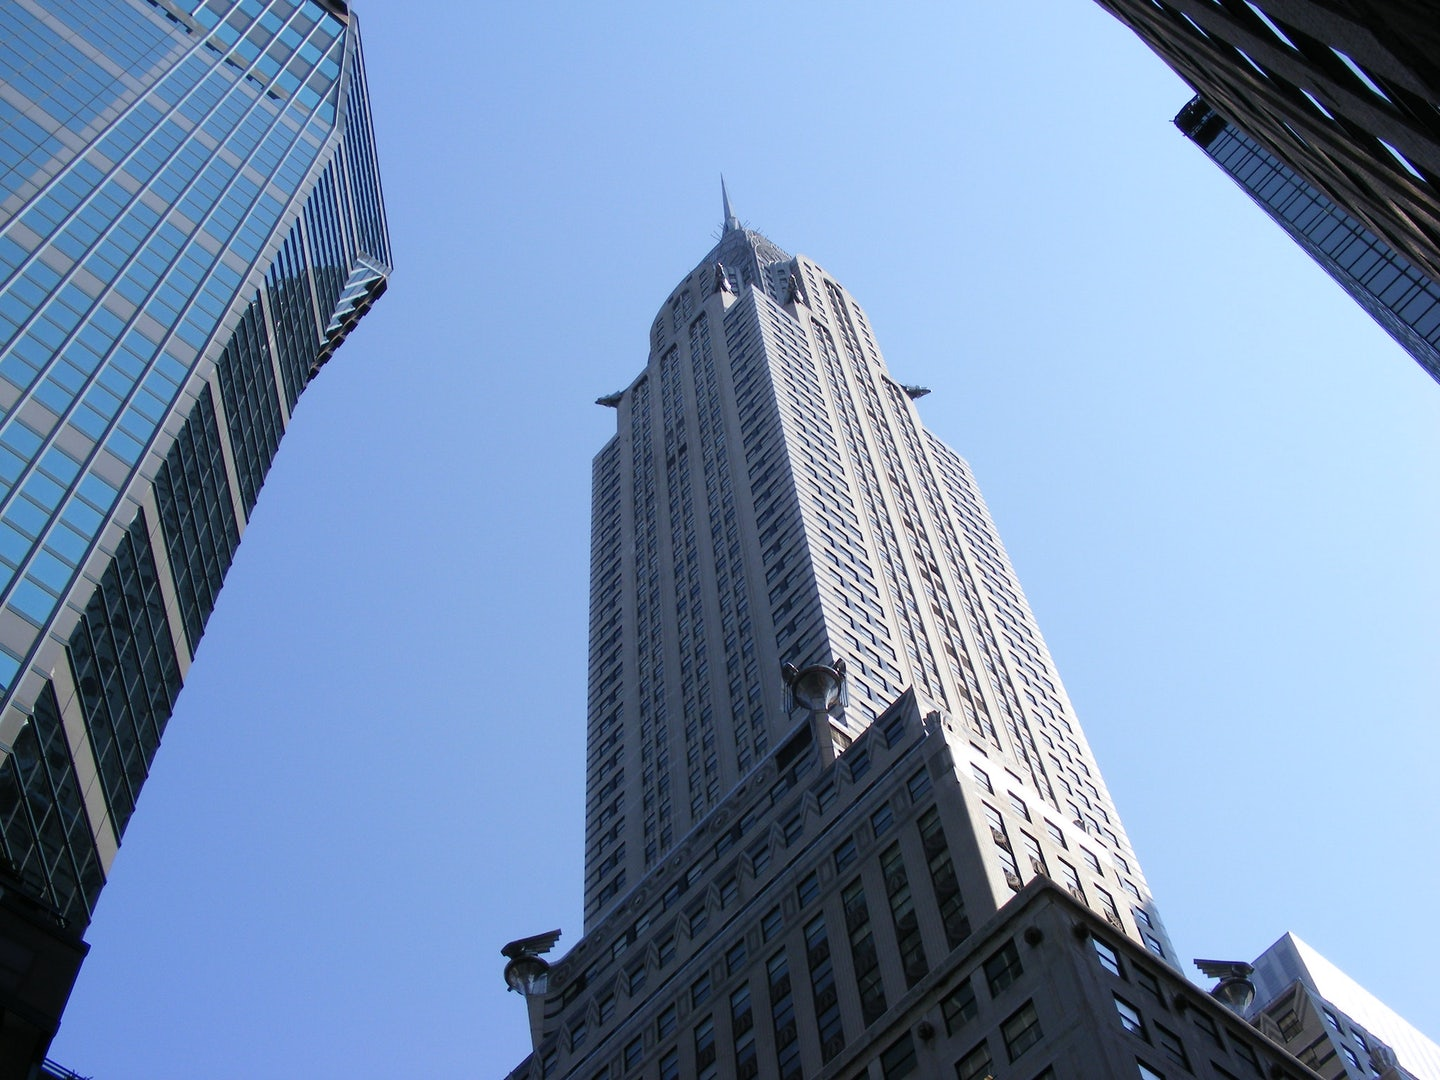 view of the Chrysler Building in NYC